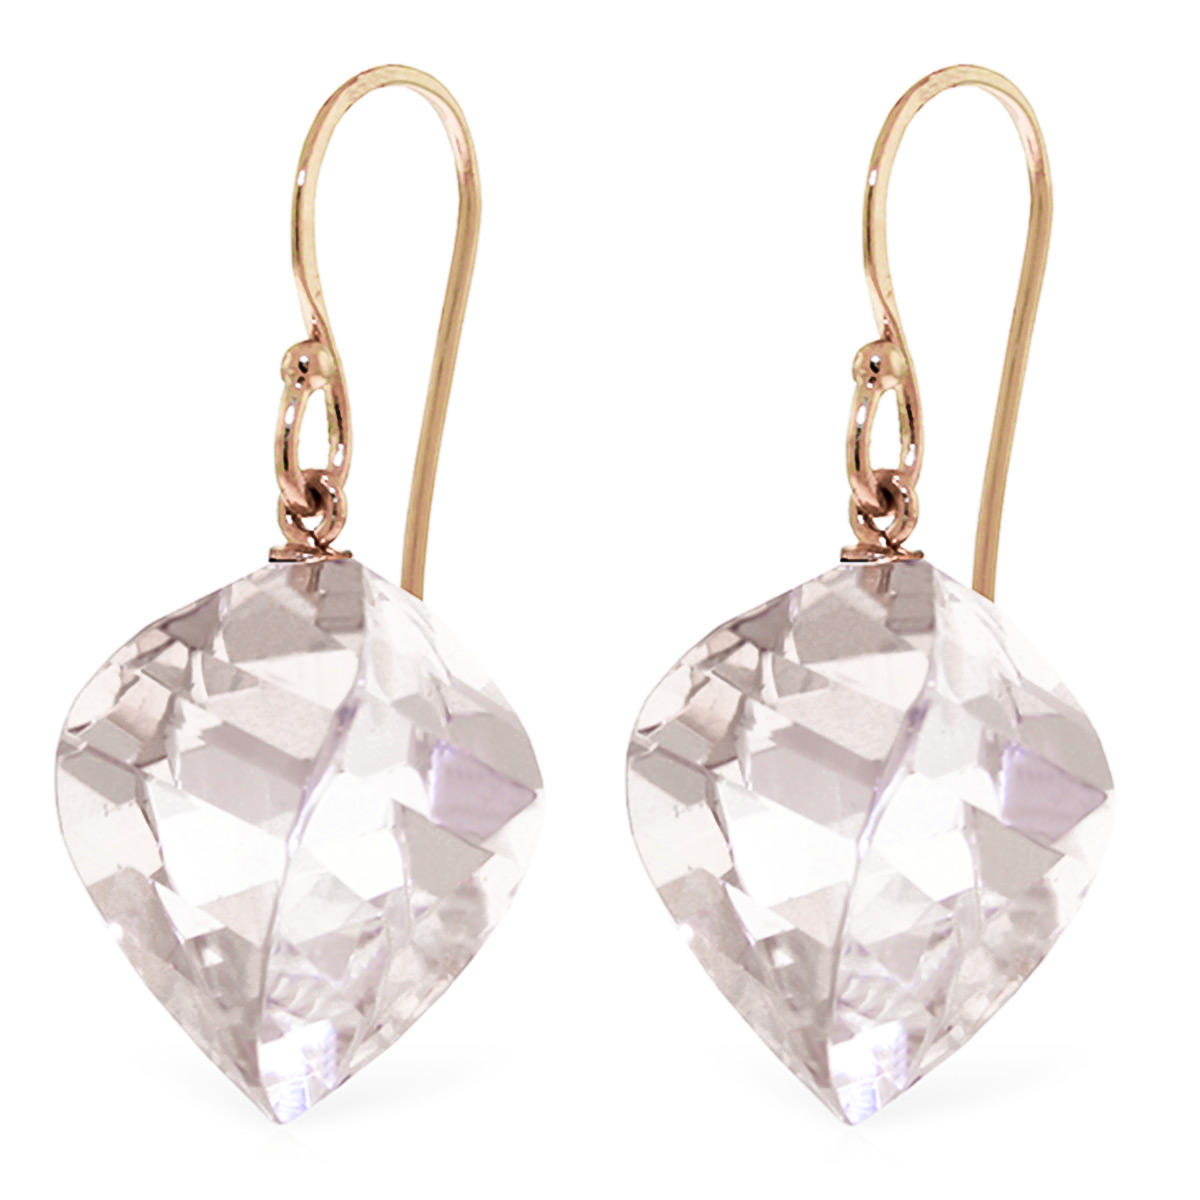 Bargain White Topaz Spiral Briolette Drop Earrings 25.6ctw in 9ct Rose Gold Stockists